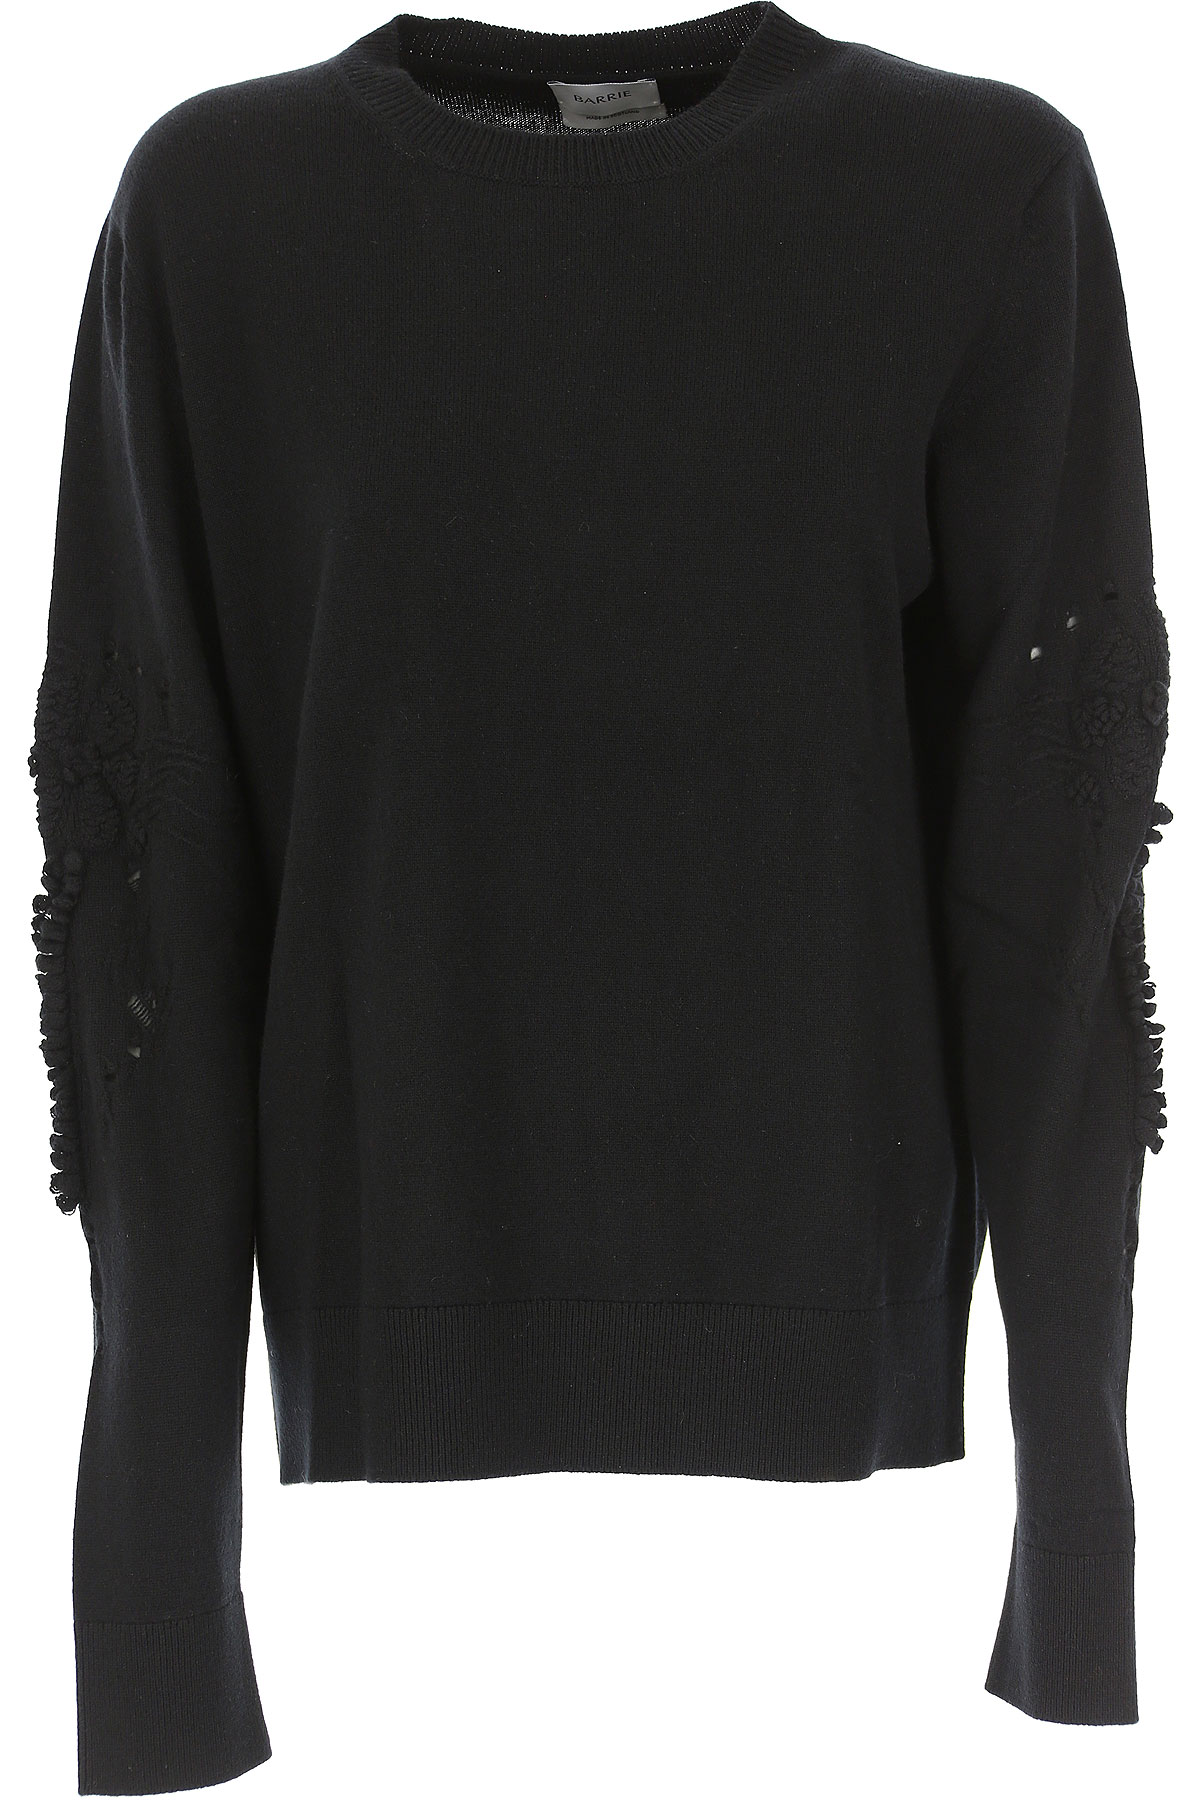 Barrie Sweater for Women Jumper On Sale, Black, Cashemere, 2019, 6 8